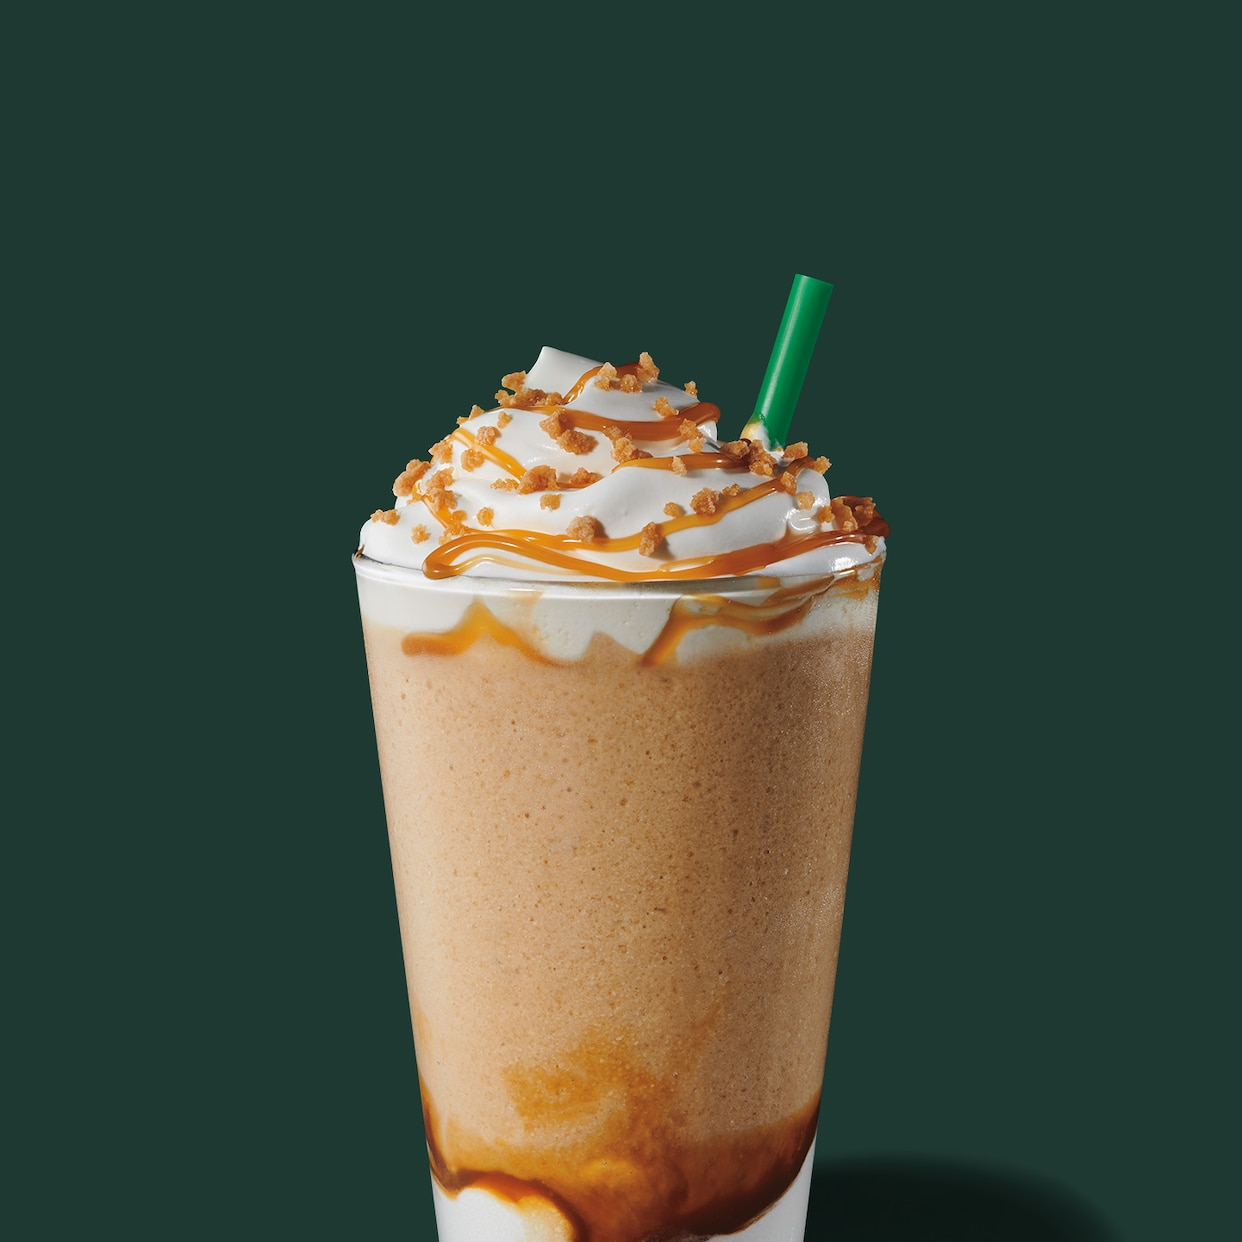 Caramel Ribbon Crunch Frappuccino Blended Beverage Starbucks Coffee Company